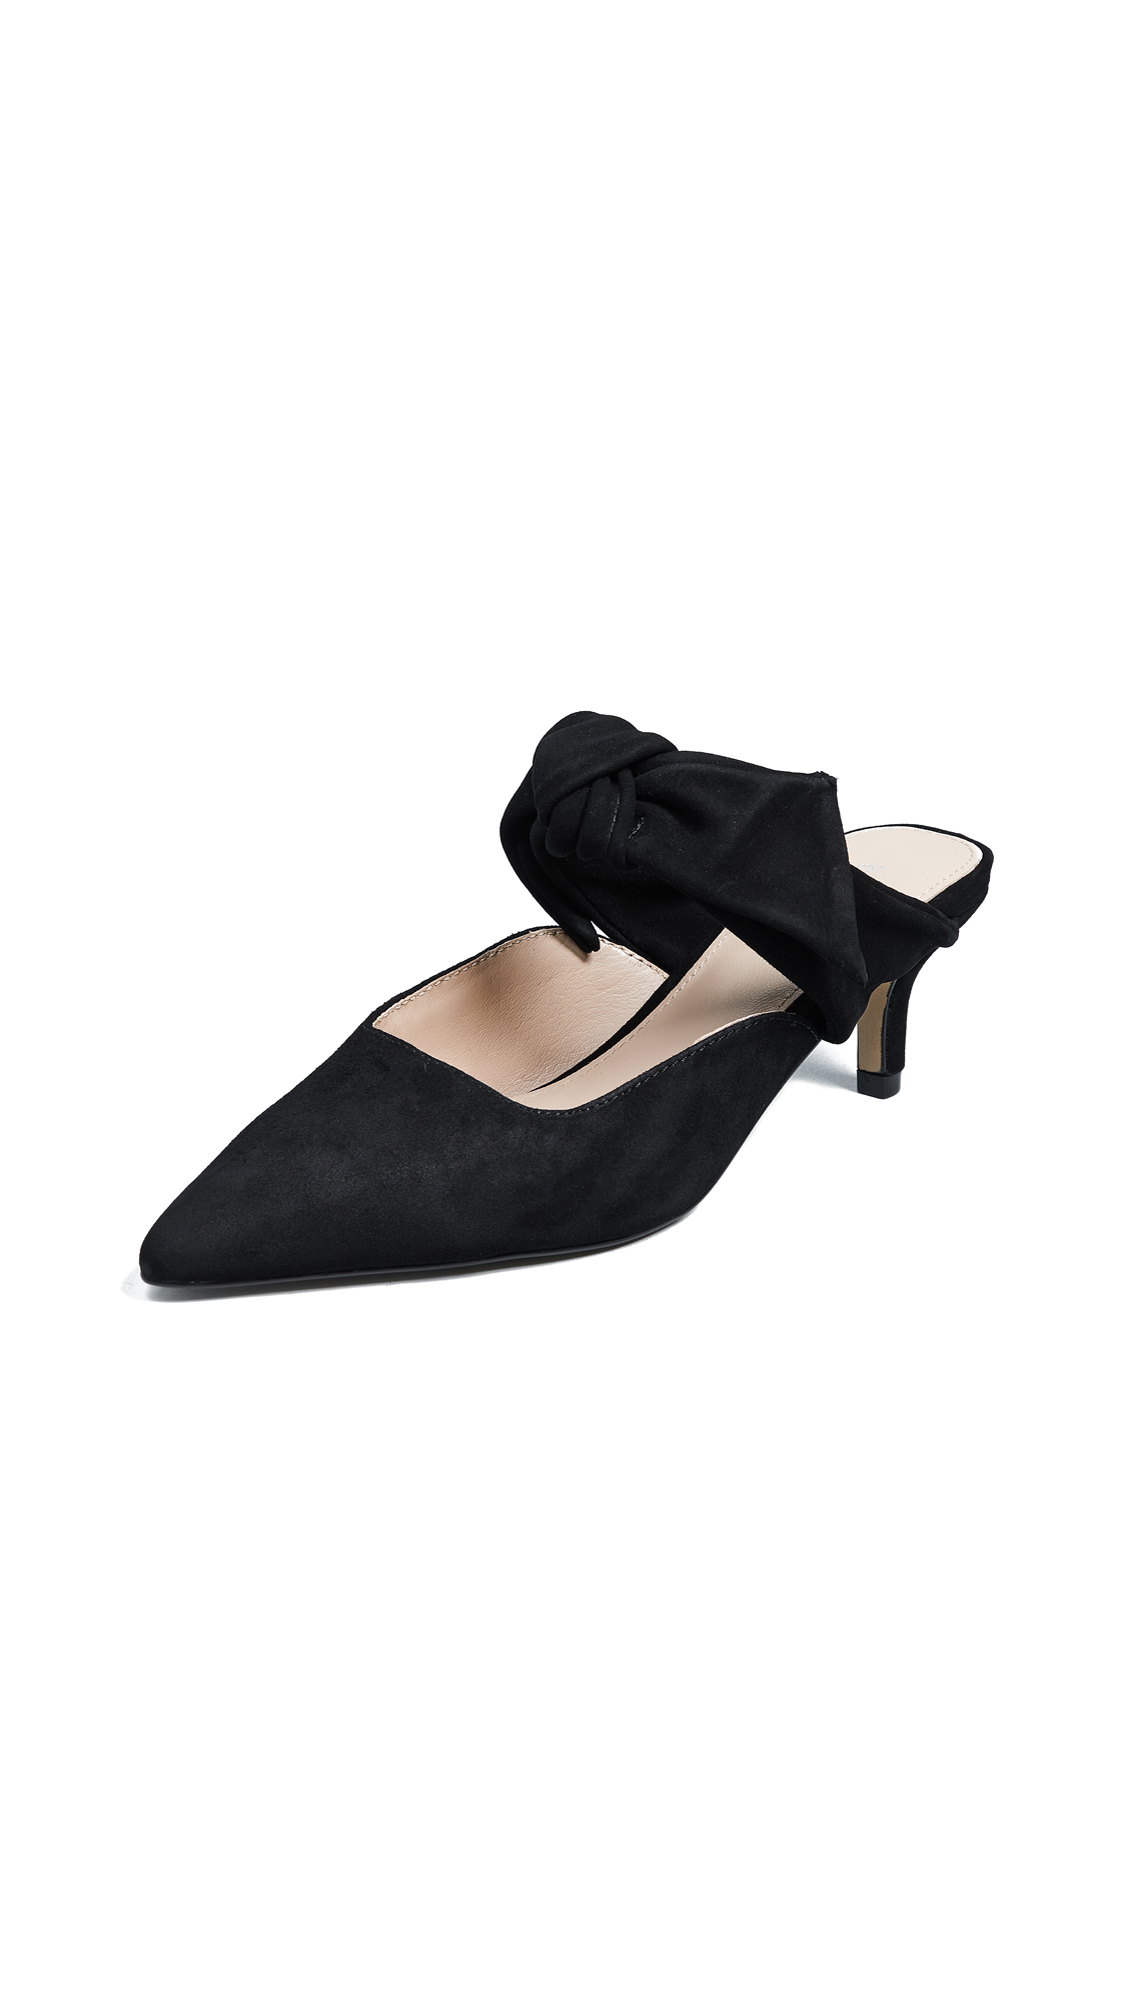 Botkier Pina Point Toe Mules - Black